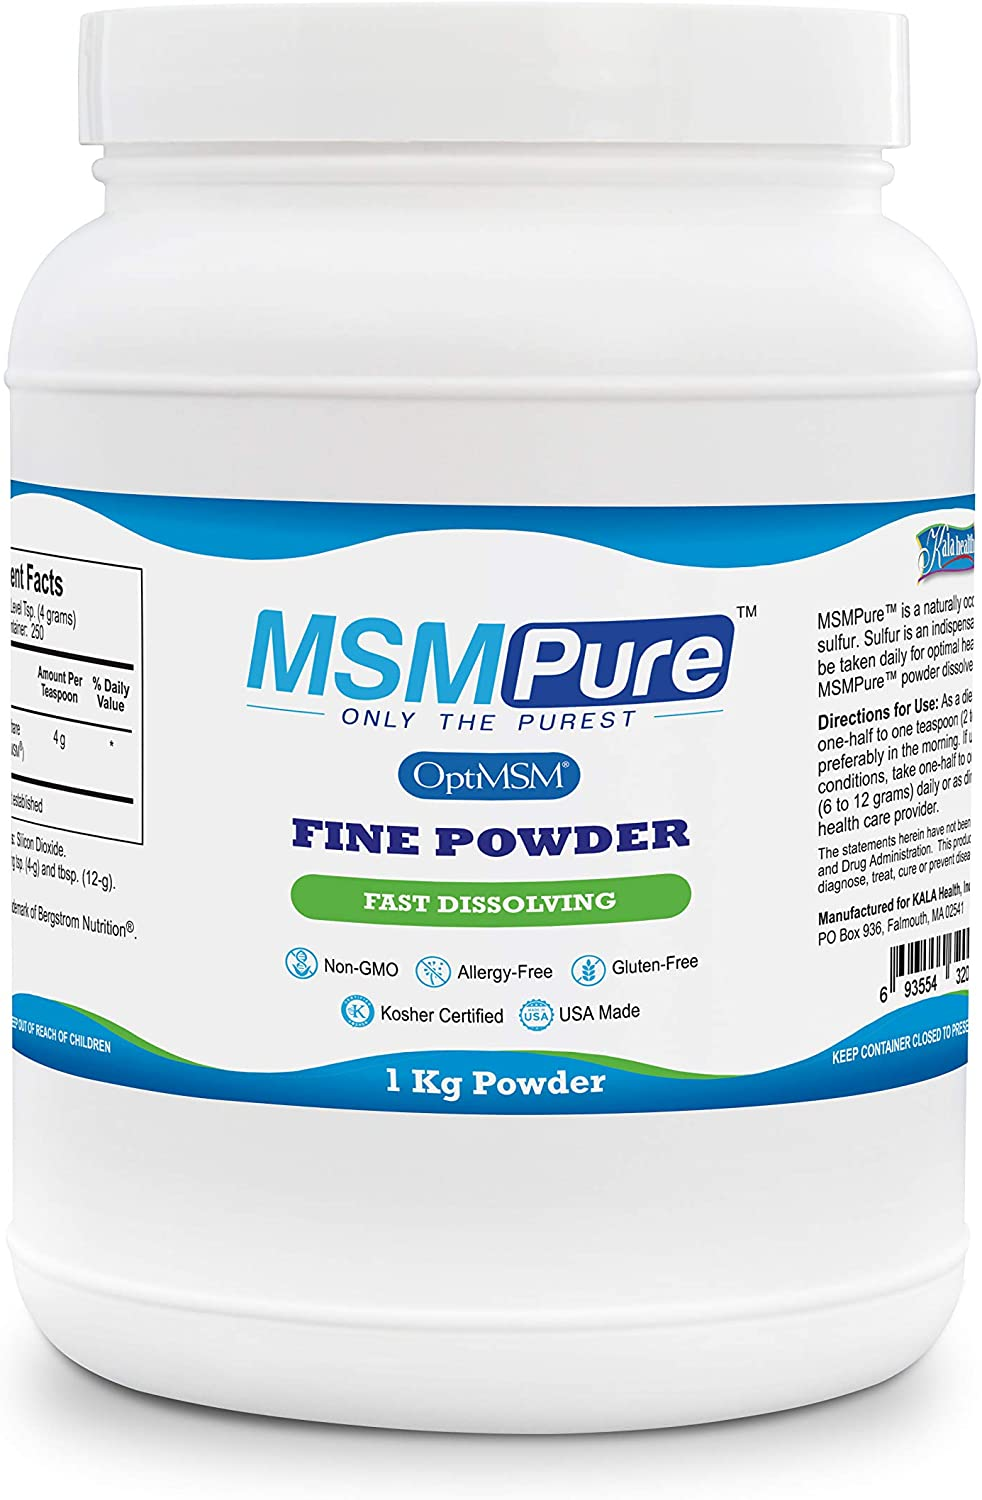 Kala Health MSMPure Fine Powder, 2.2 lb, Fast Dissolving Organic Sulfur Crystals, 99% Pure Distilled MSM Supplement, Made in USA